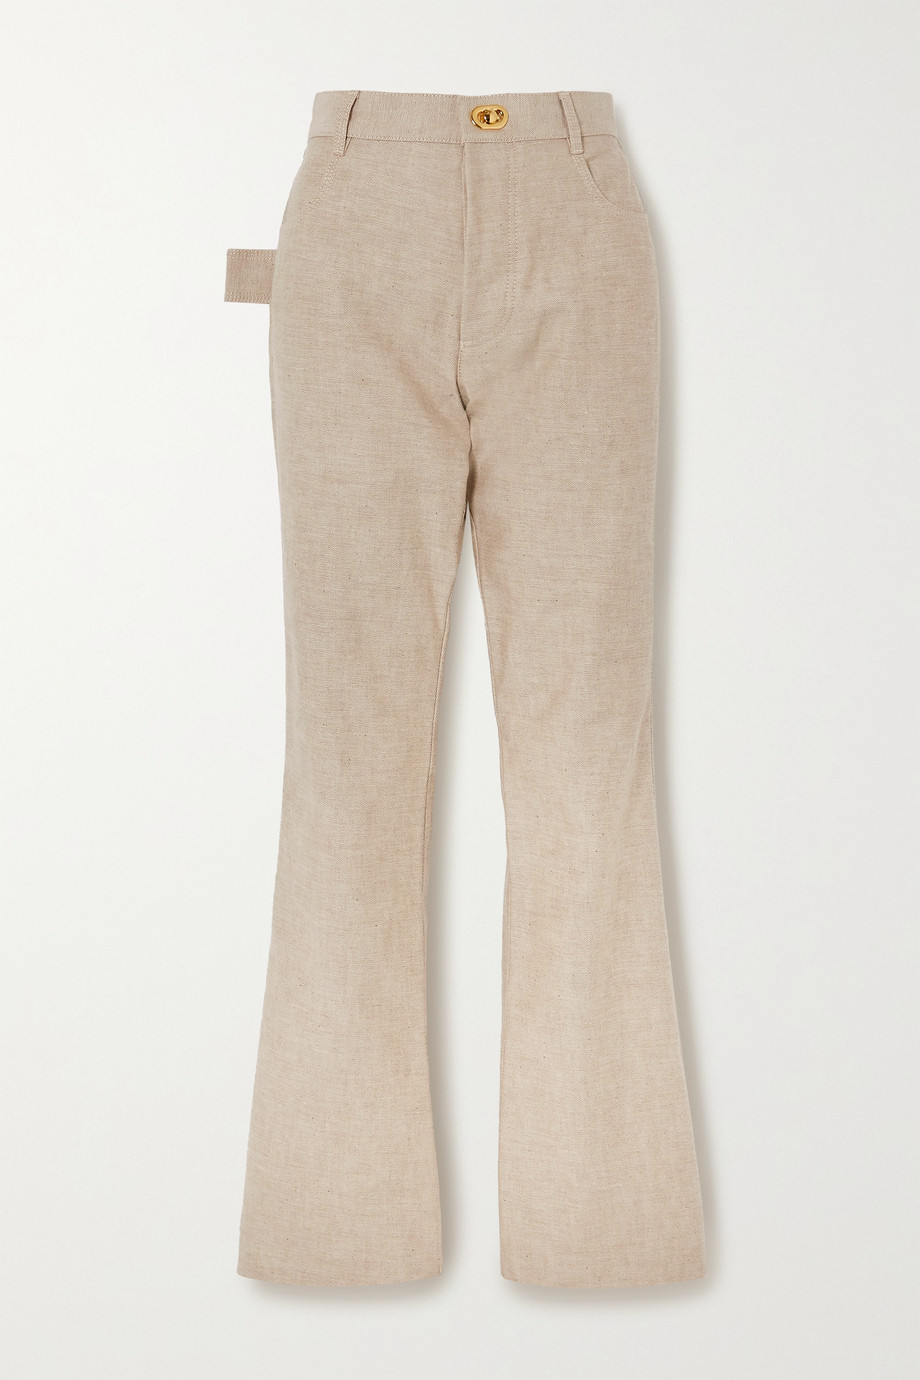 Bottega Veneta High-rise straight-leg jeans